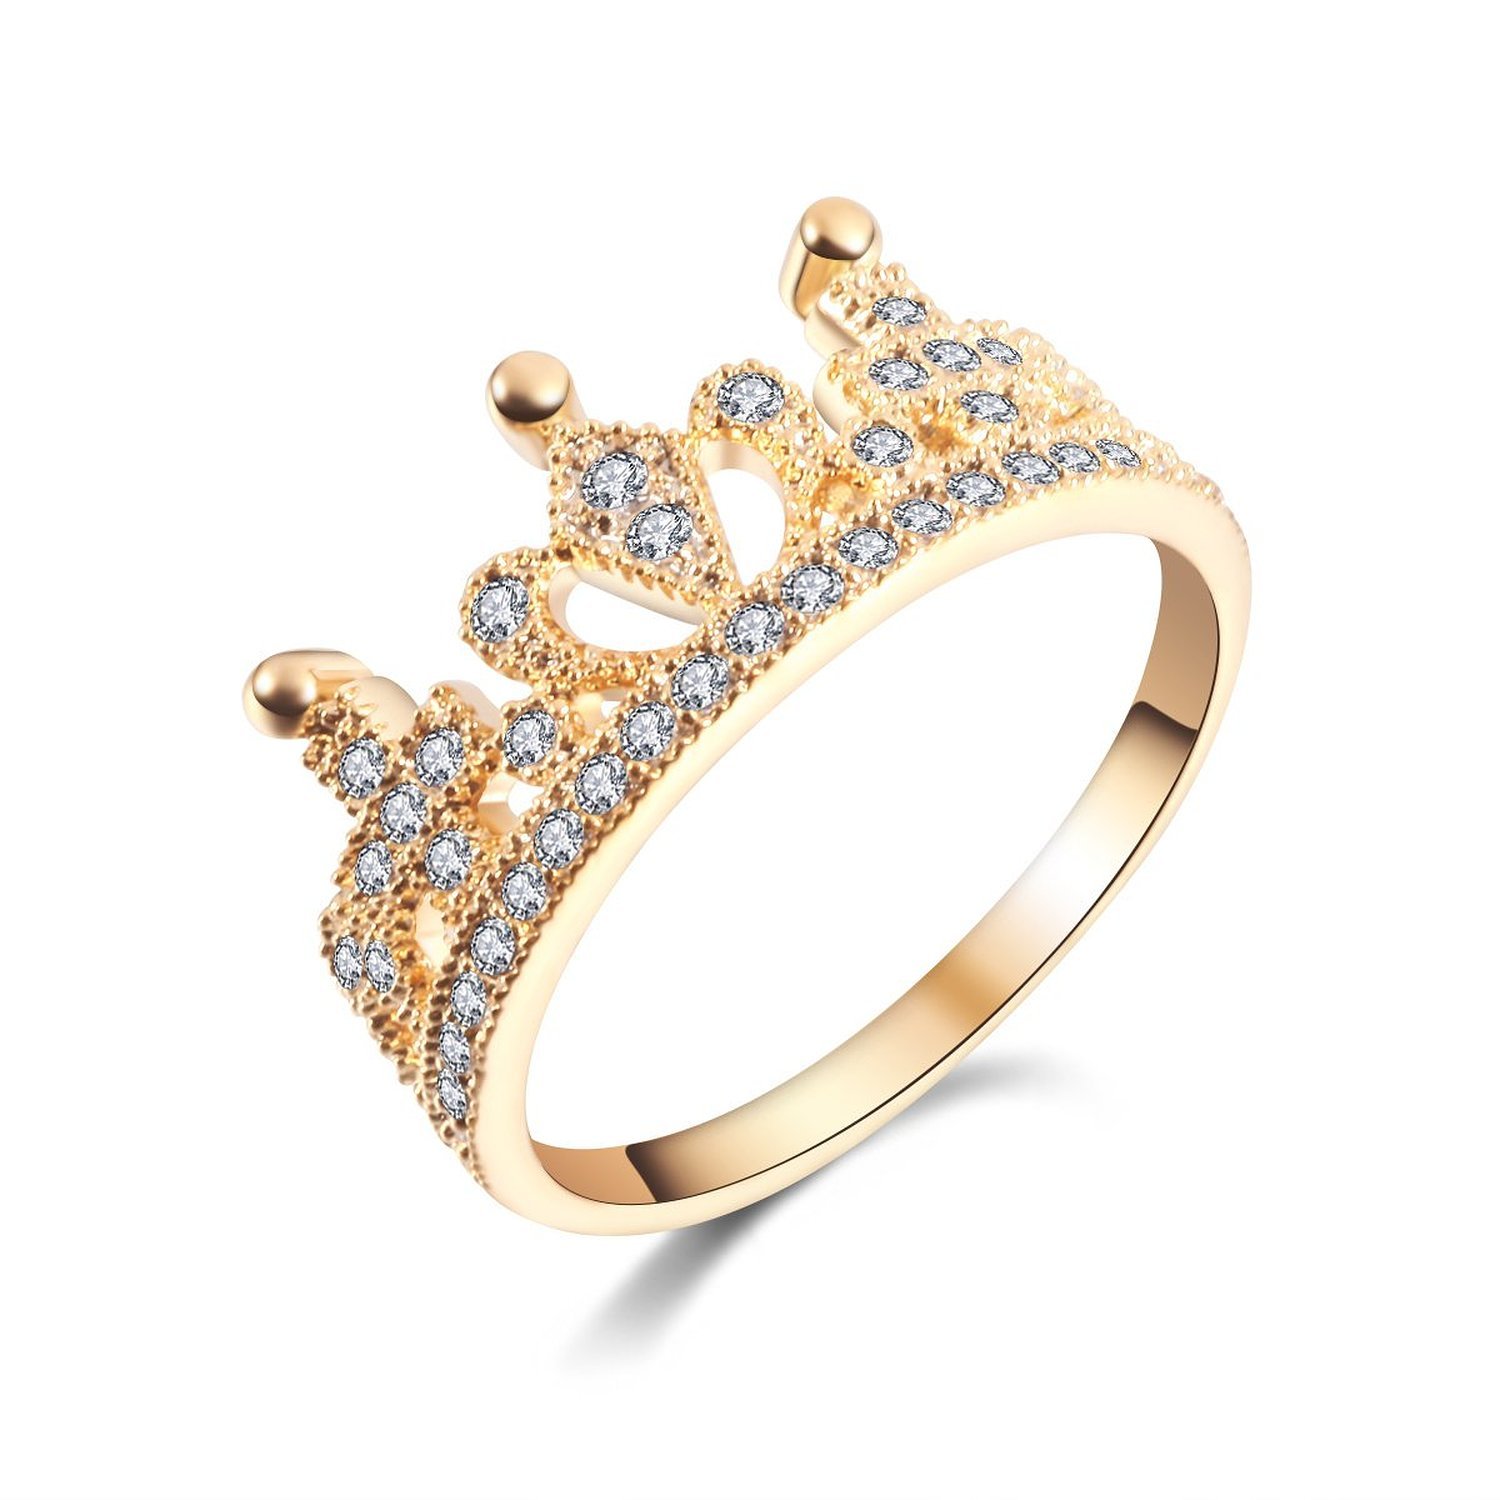 Amazon.com: mp rhodium plated cute crown golden ring 061795j j0701 size us 6: jewelry